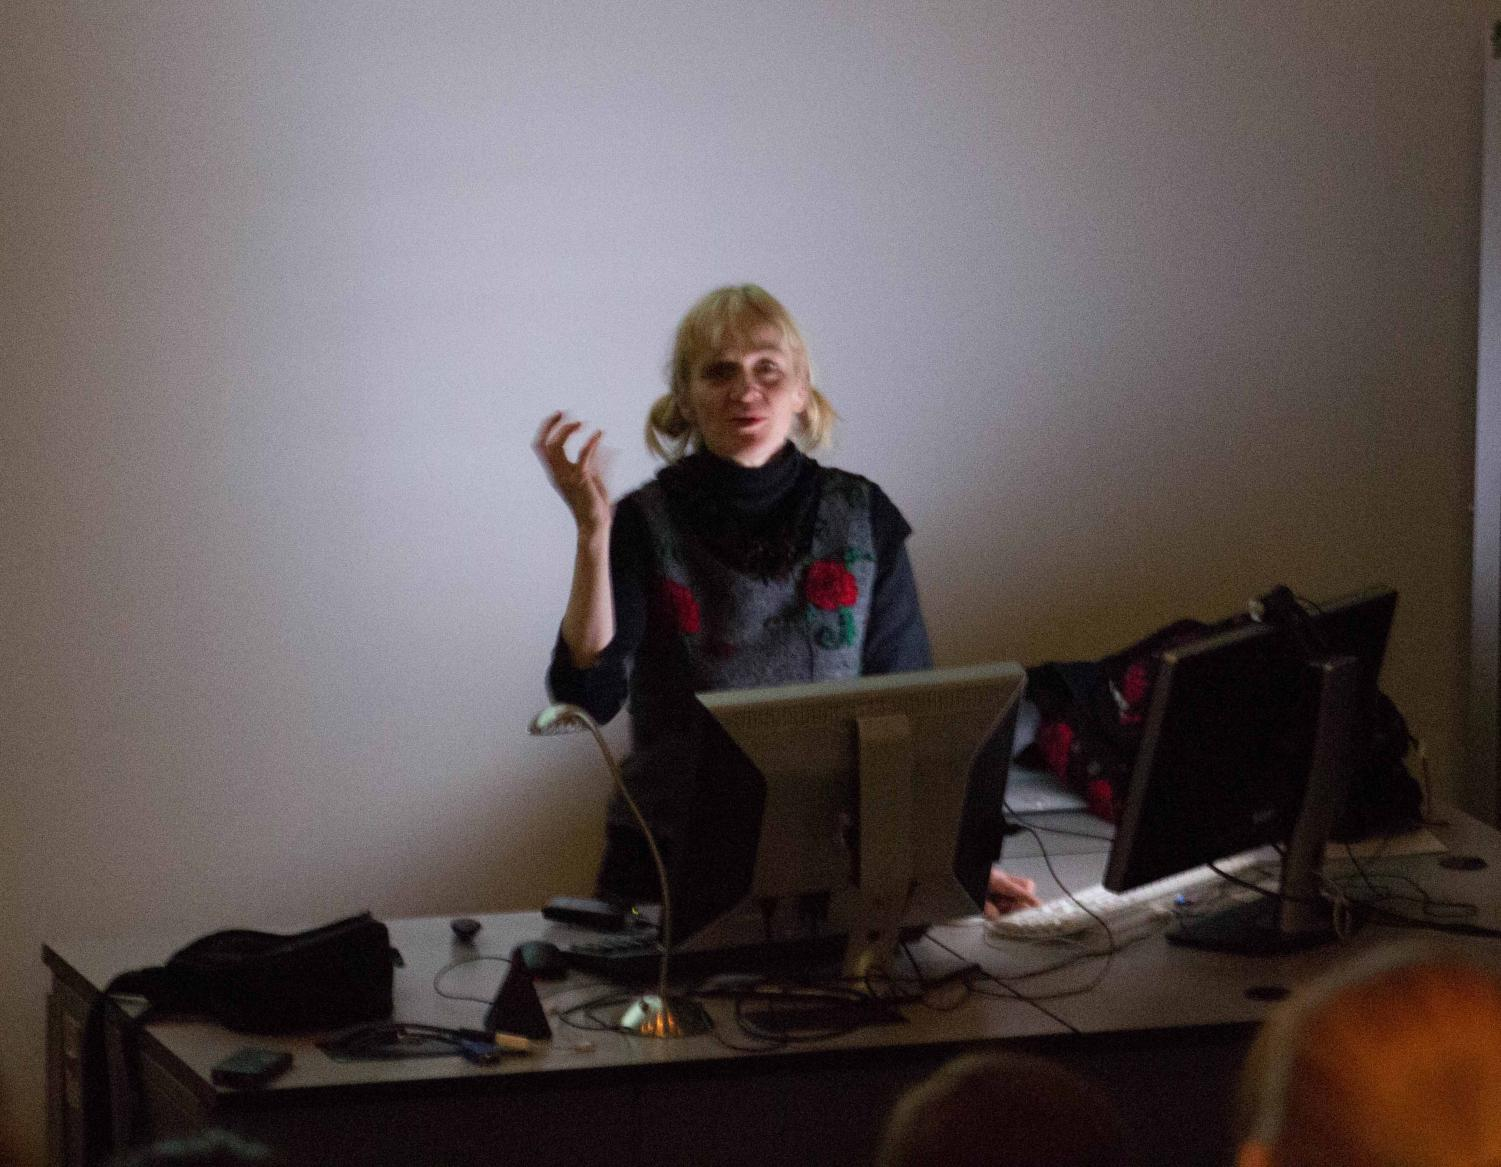 Gerit Grimm is a ceramist artist from the University of Wisconsin-Madison and assistant art professor. She visited UNI Jan. 25 to lecture about her art.